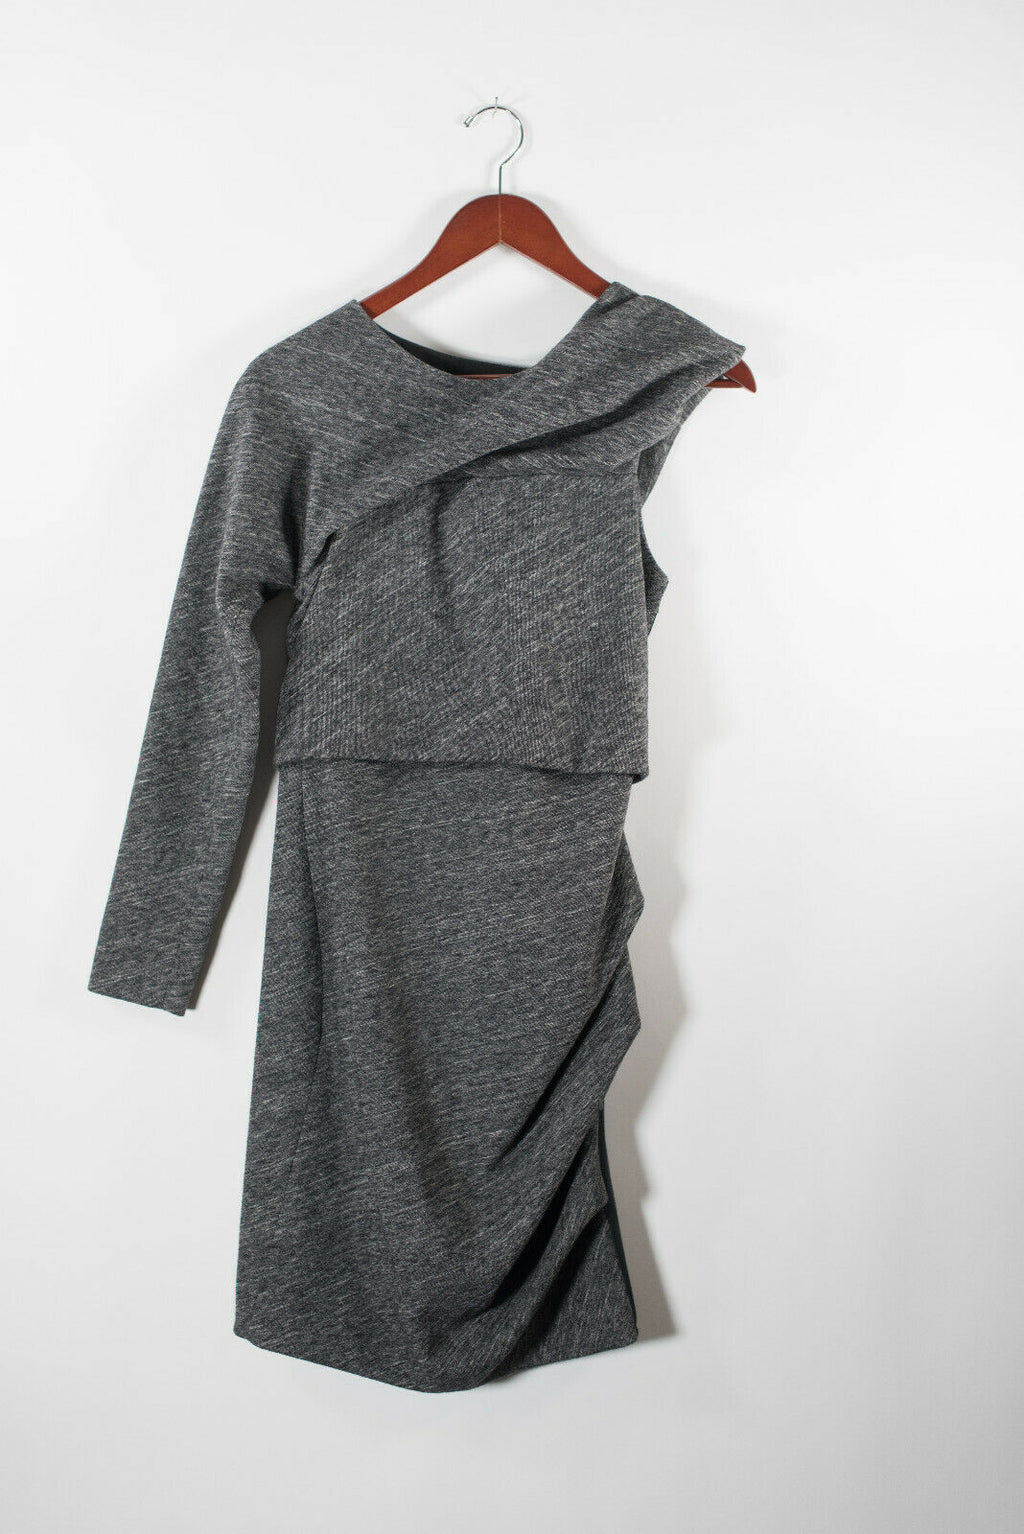 Yigal Azrouel Womens 4 Small Grey Dress Asymmetrical Sleeve Ruched Full Zip Mini